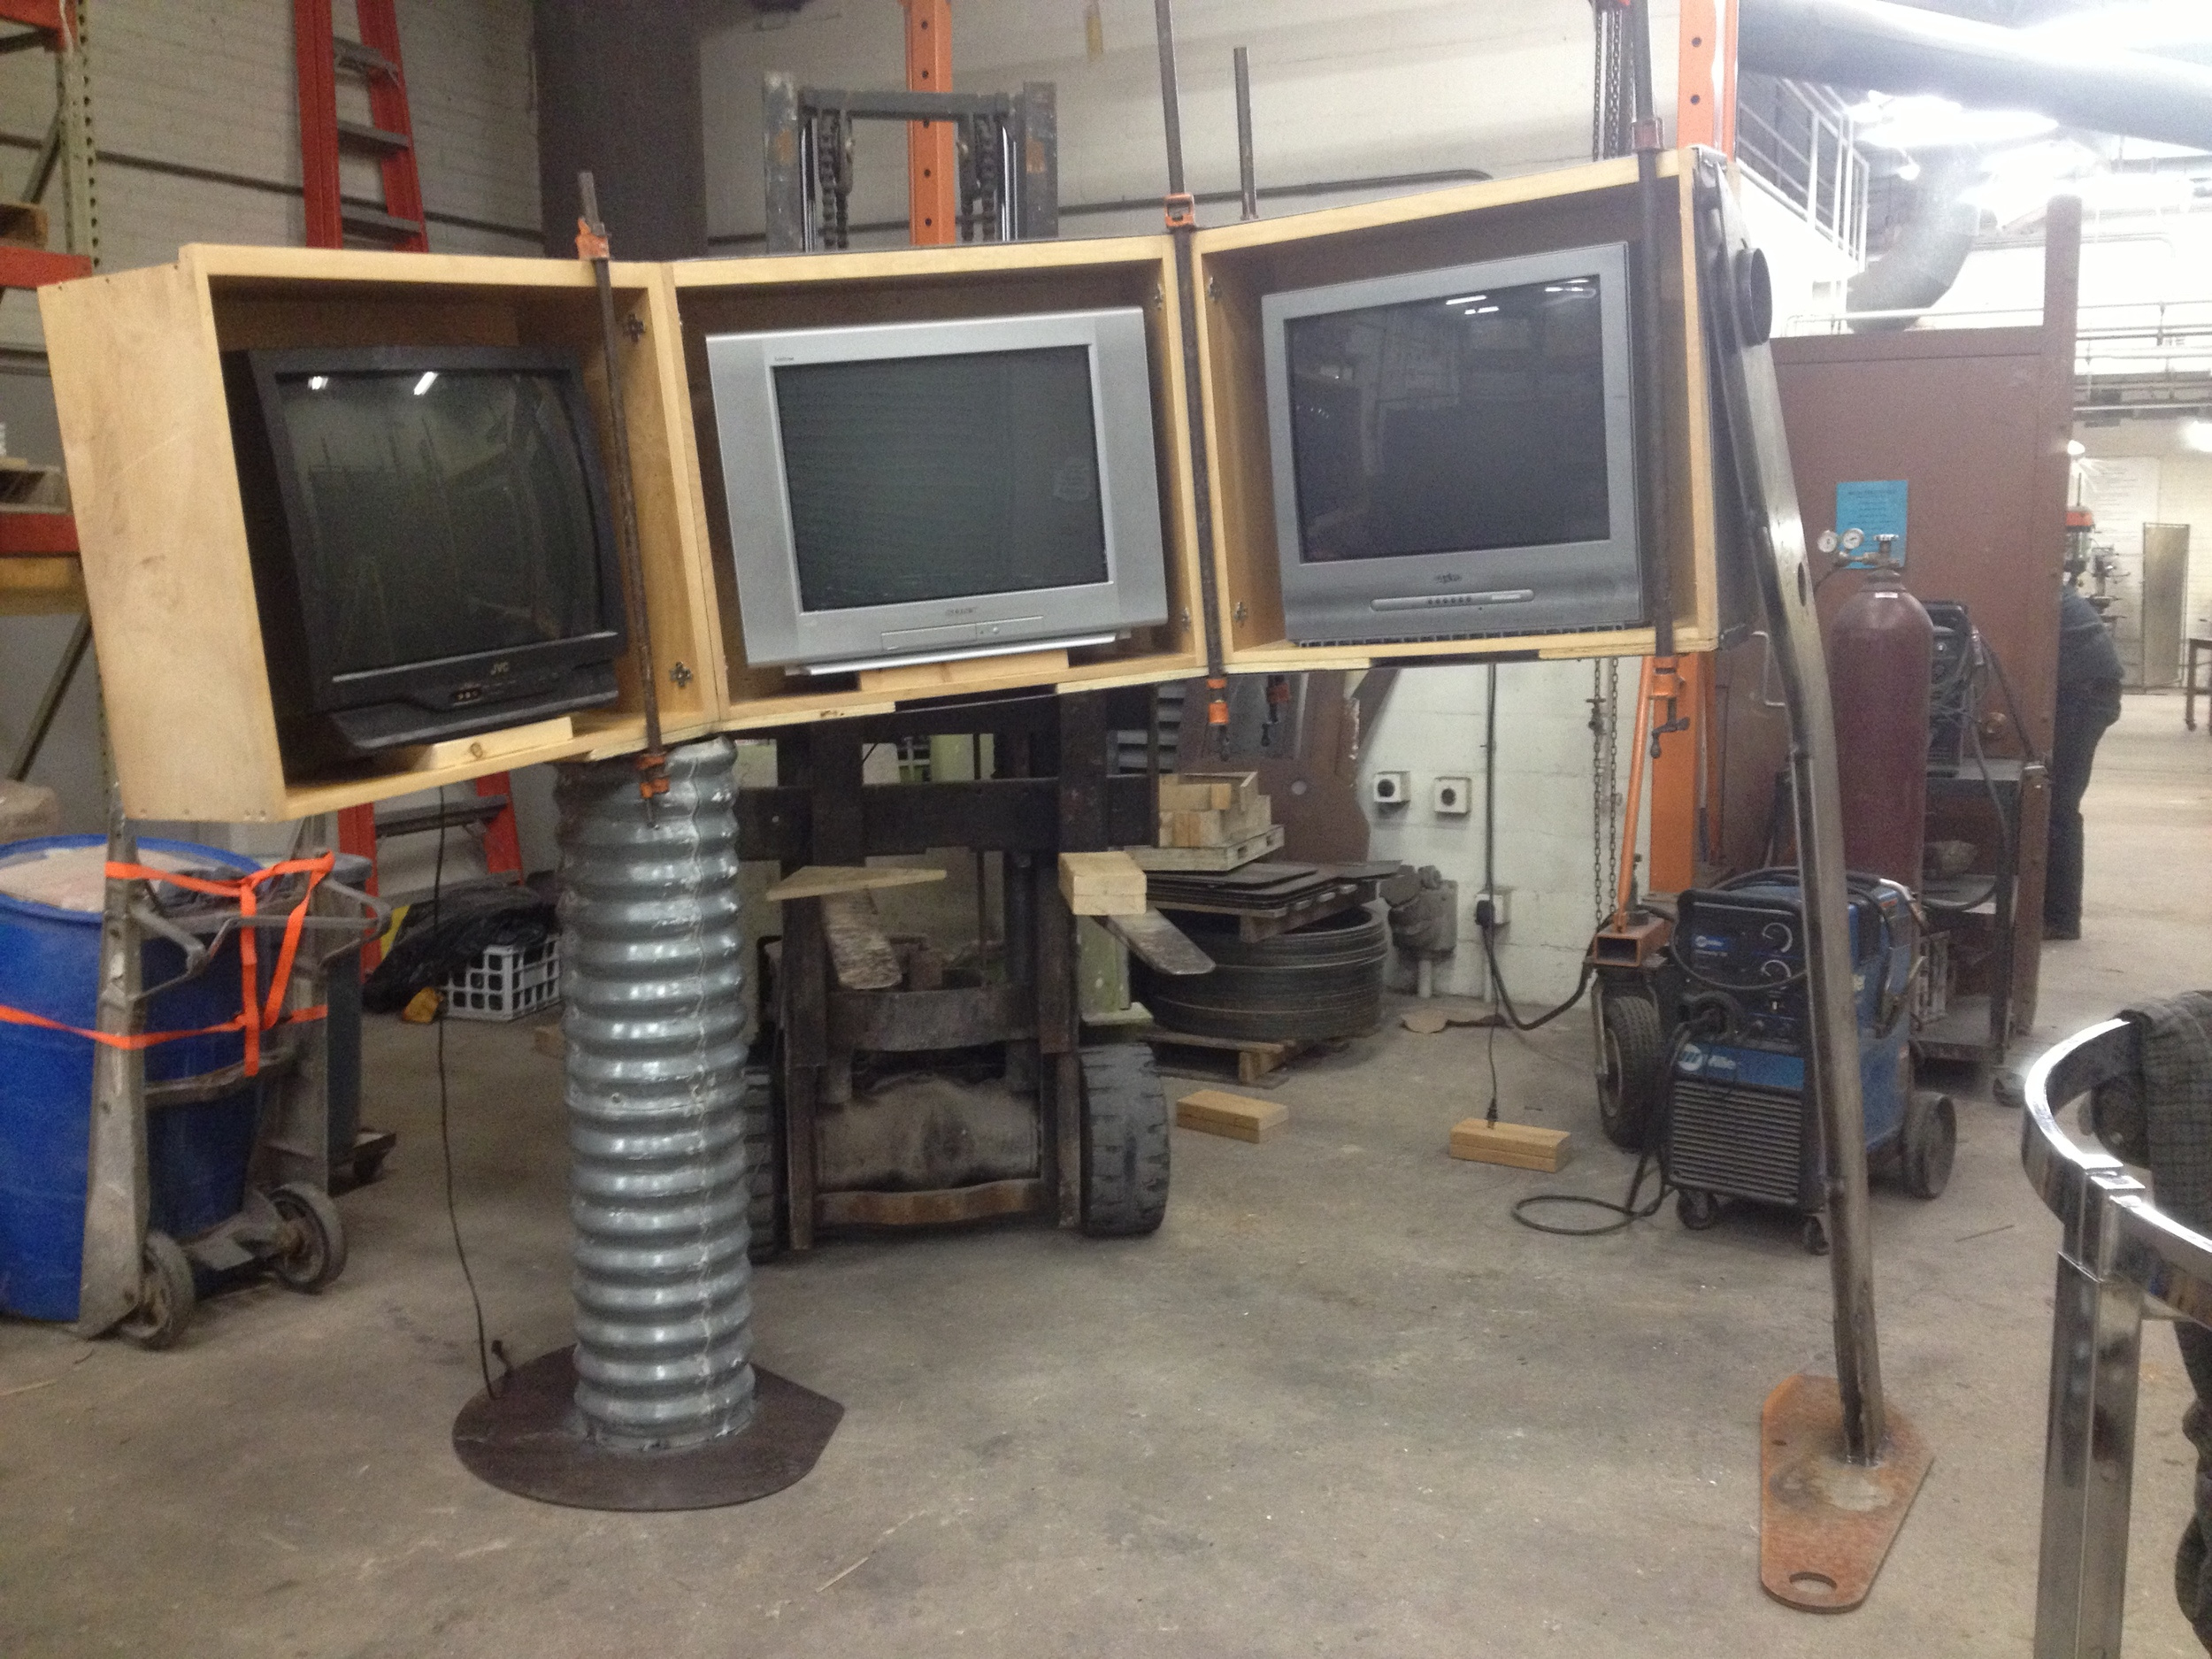 The monitors mounted in their boxes and raised on their support columns. At this point everything is being held in place by gravity, while the pipe clamps here are serving the function of holding the ribbed columnar element and metal sheafing in place, prior to being bolted and screwed together. In the final product the clamps serve as an aesthetic device.